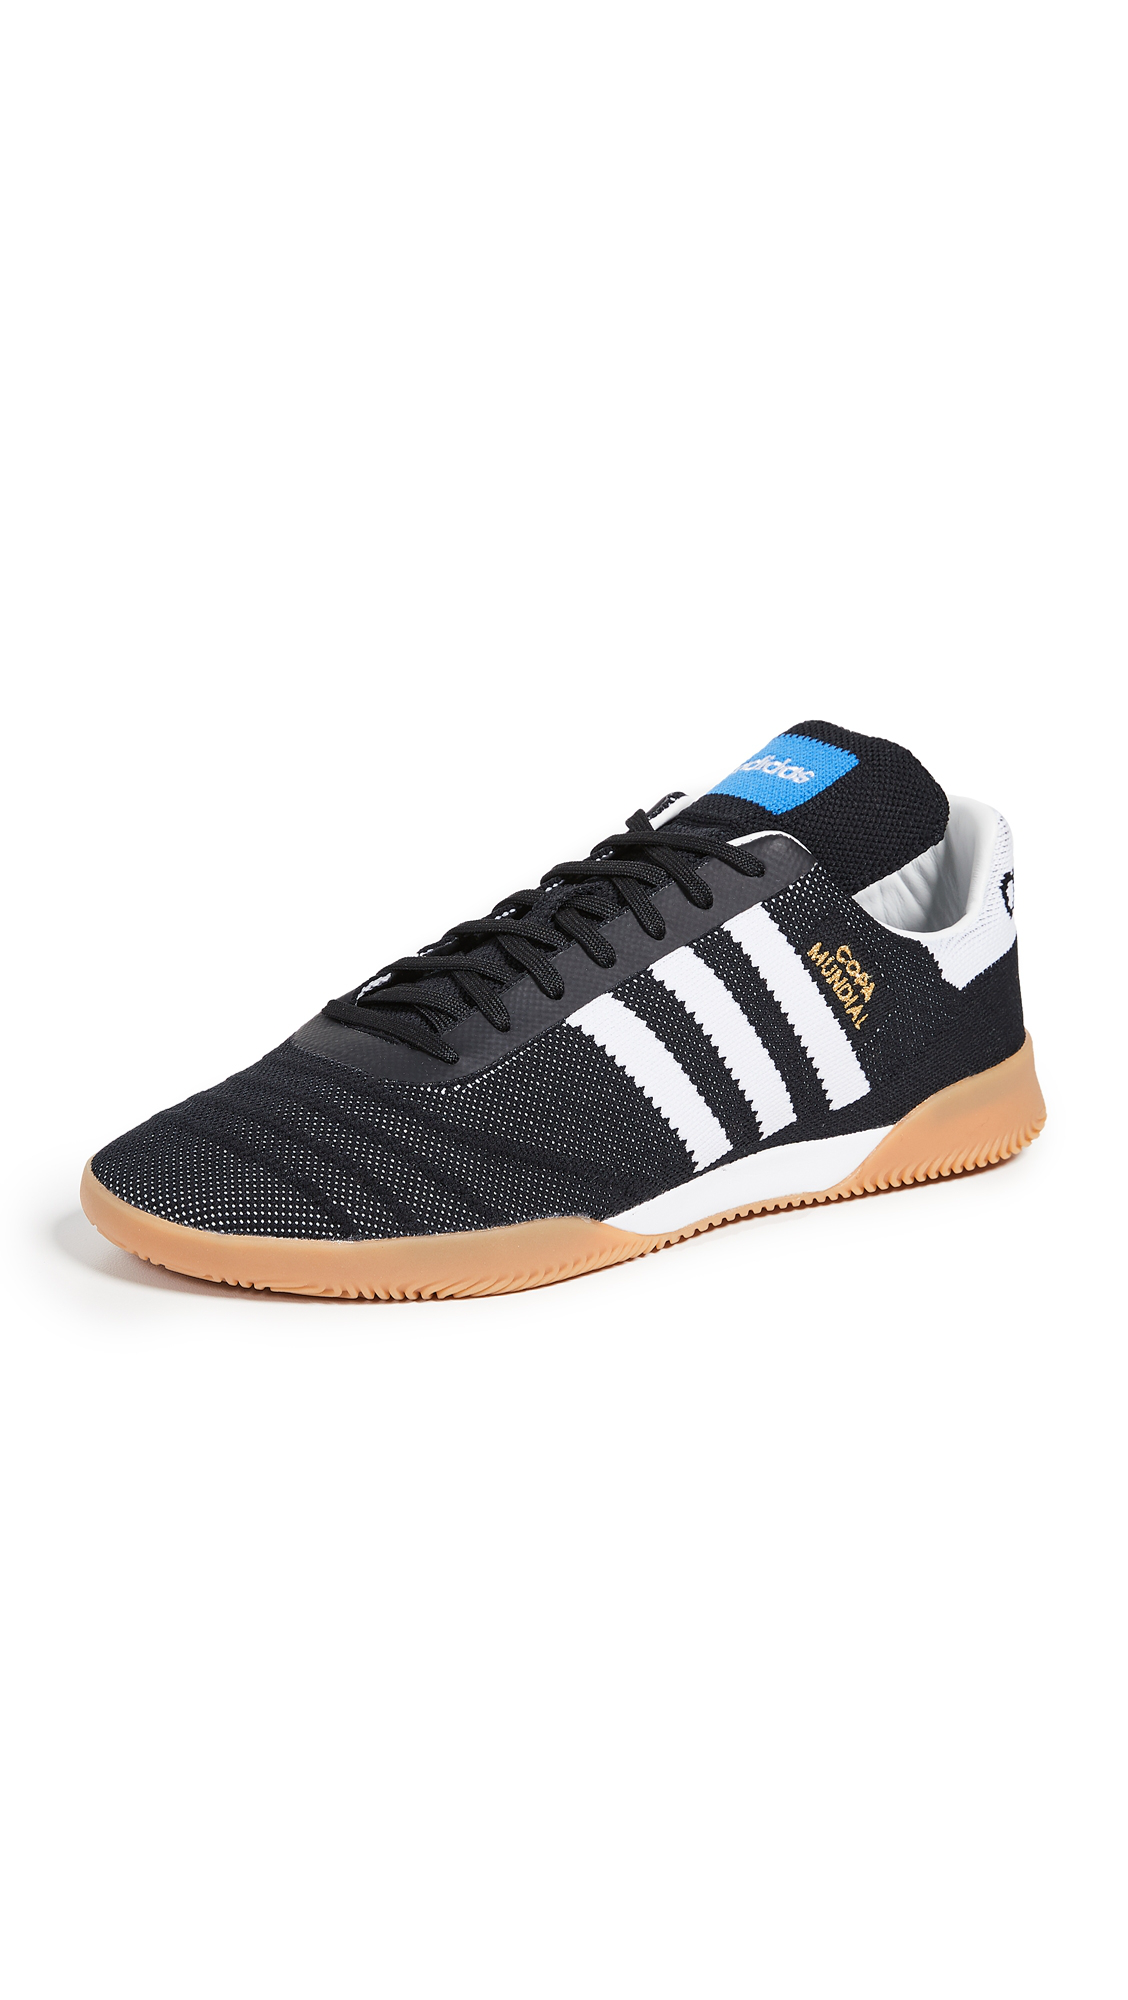 brand new dadfe 047e6 Adidas X Football Copa 70 Year Sneakers In Core Black